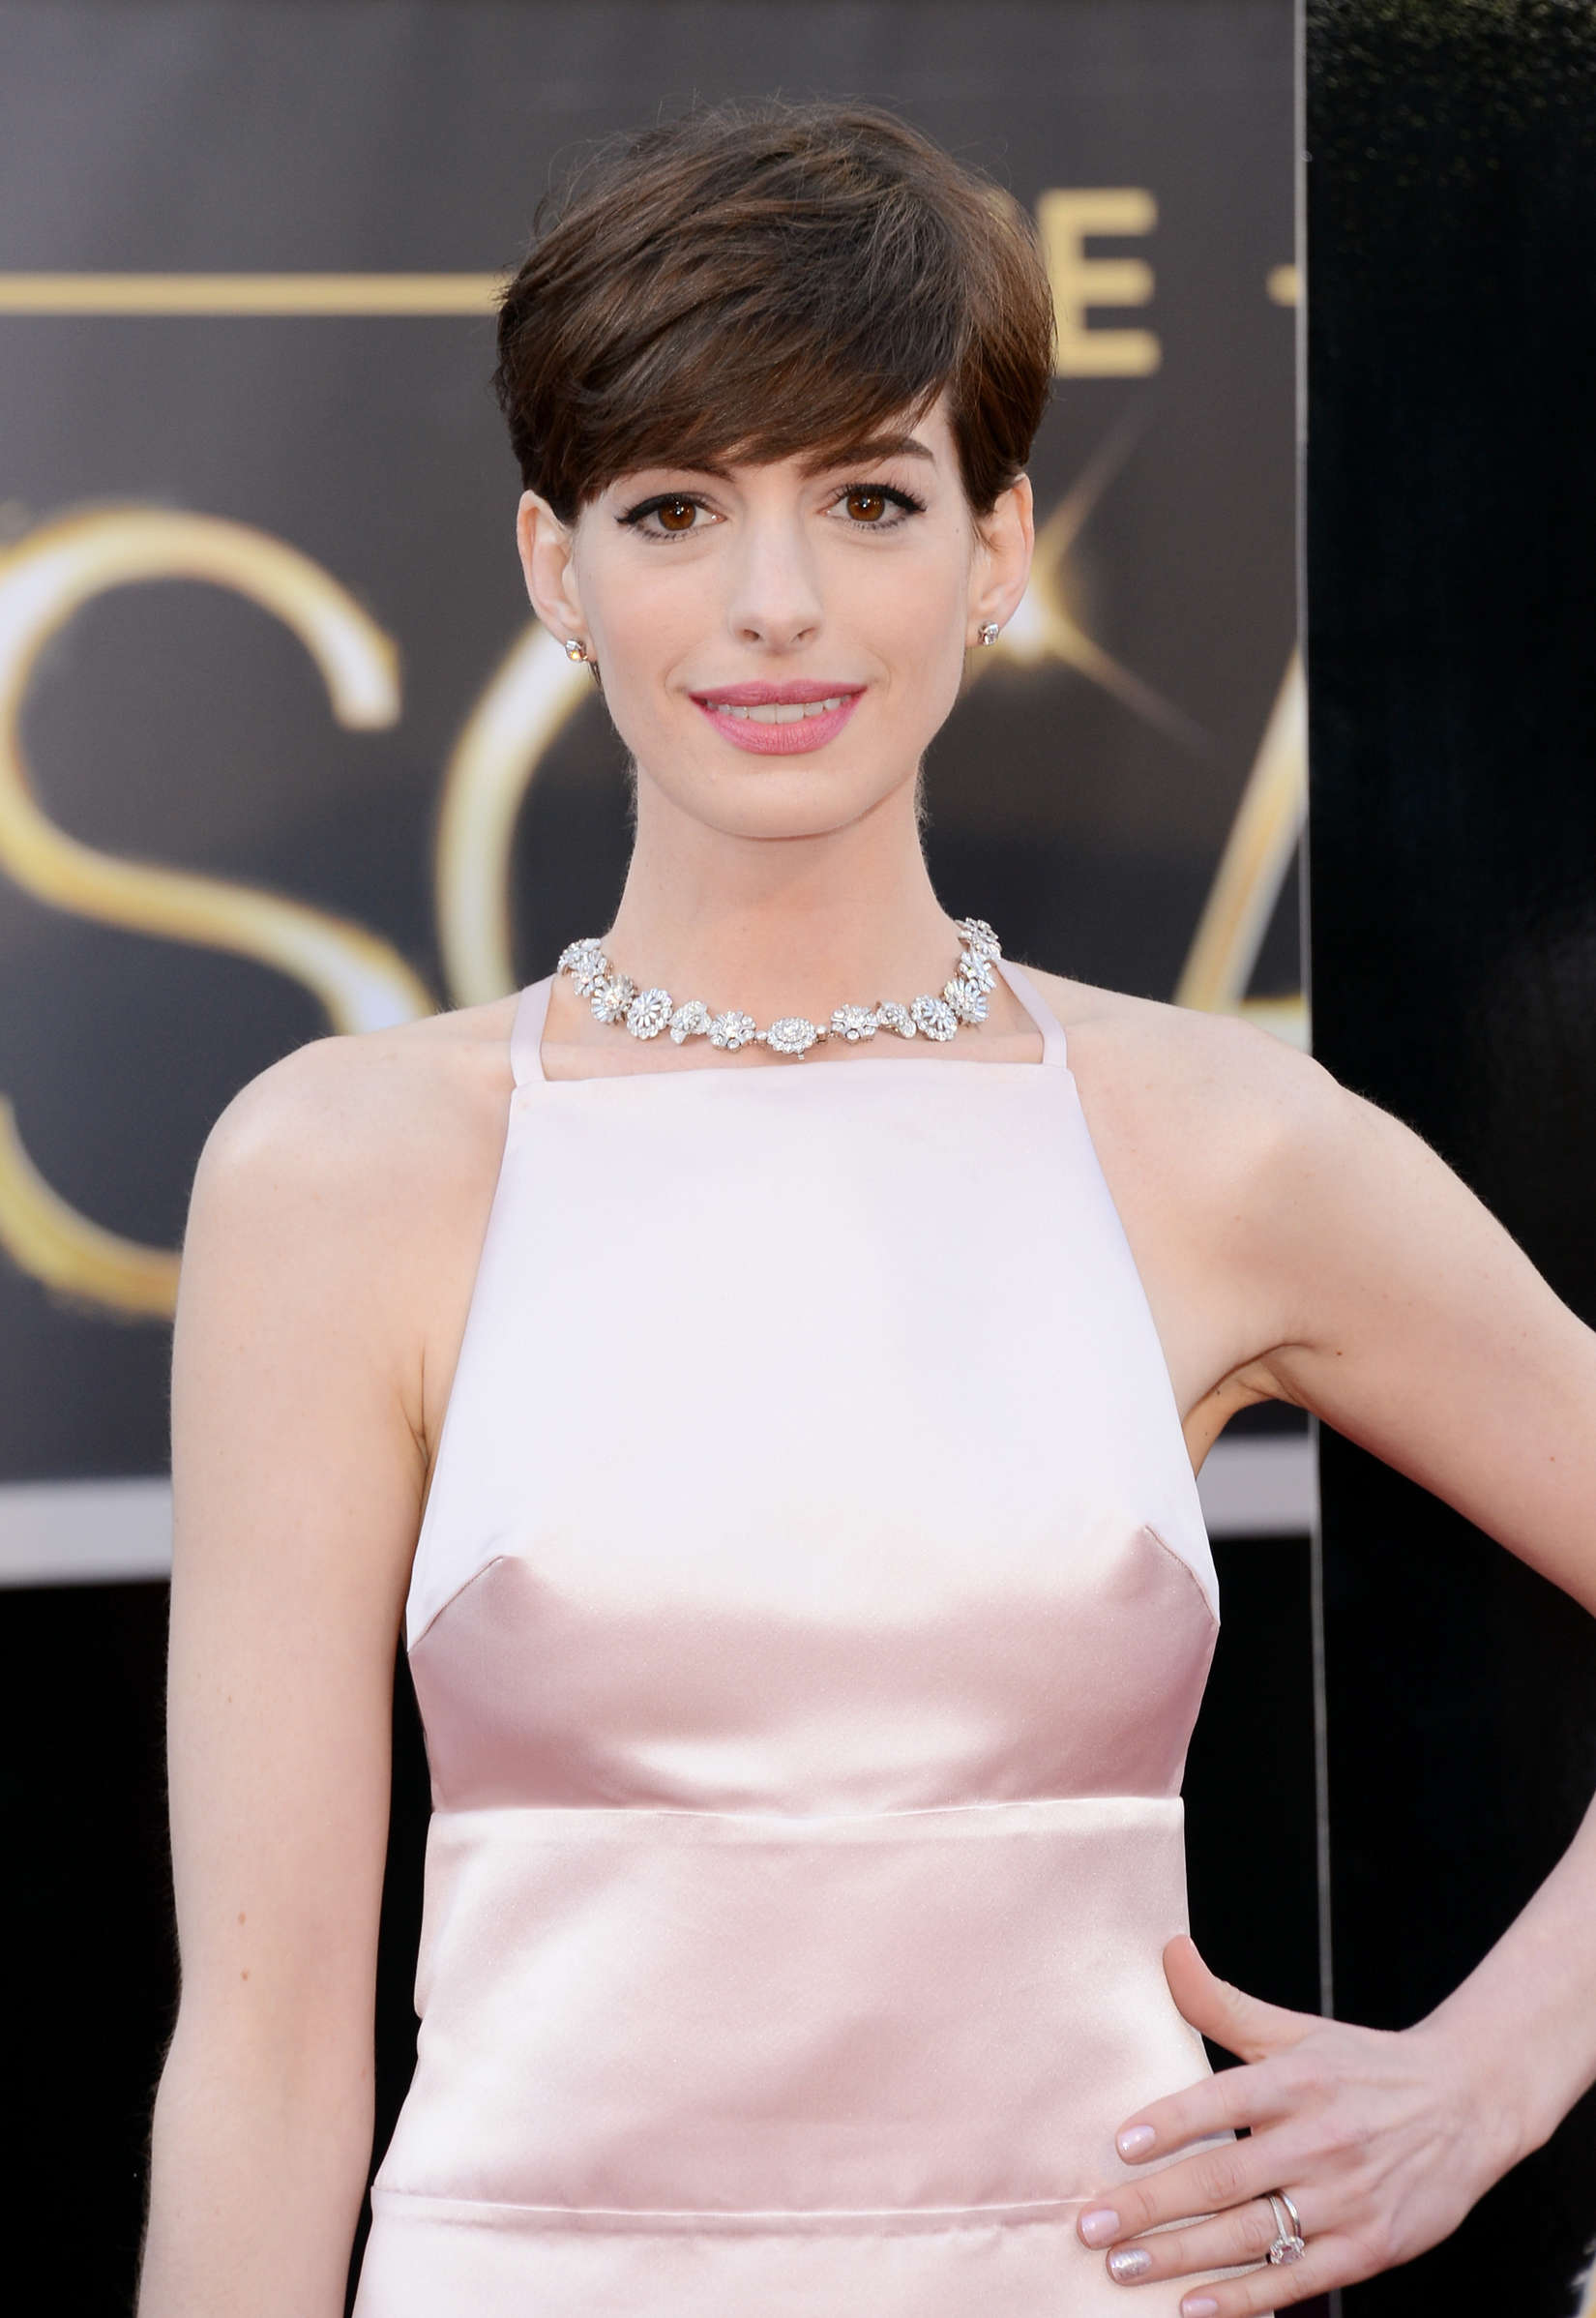 Oscar Winner Anne Hathaway to Present at the 86th Academy Awards Oscar Winner Anne Hathaway to Present at the 86th Academy Awards